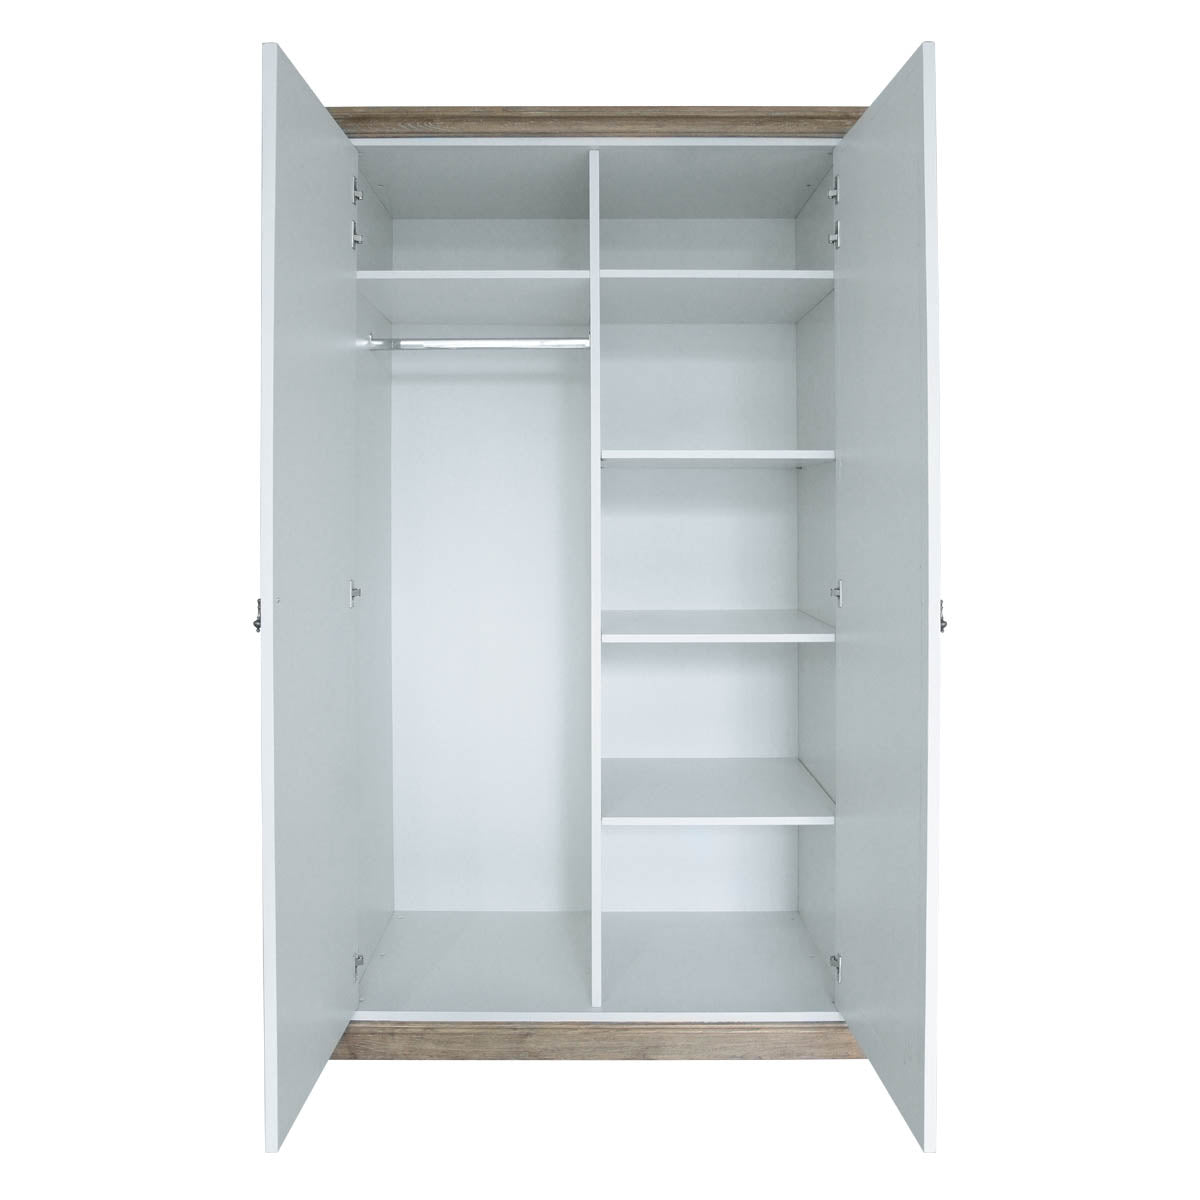 Belle Wardrobe - Vinoti Living